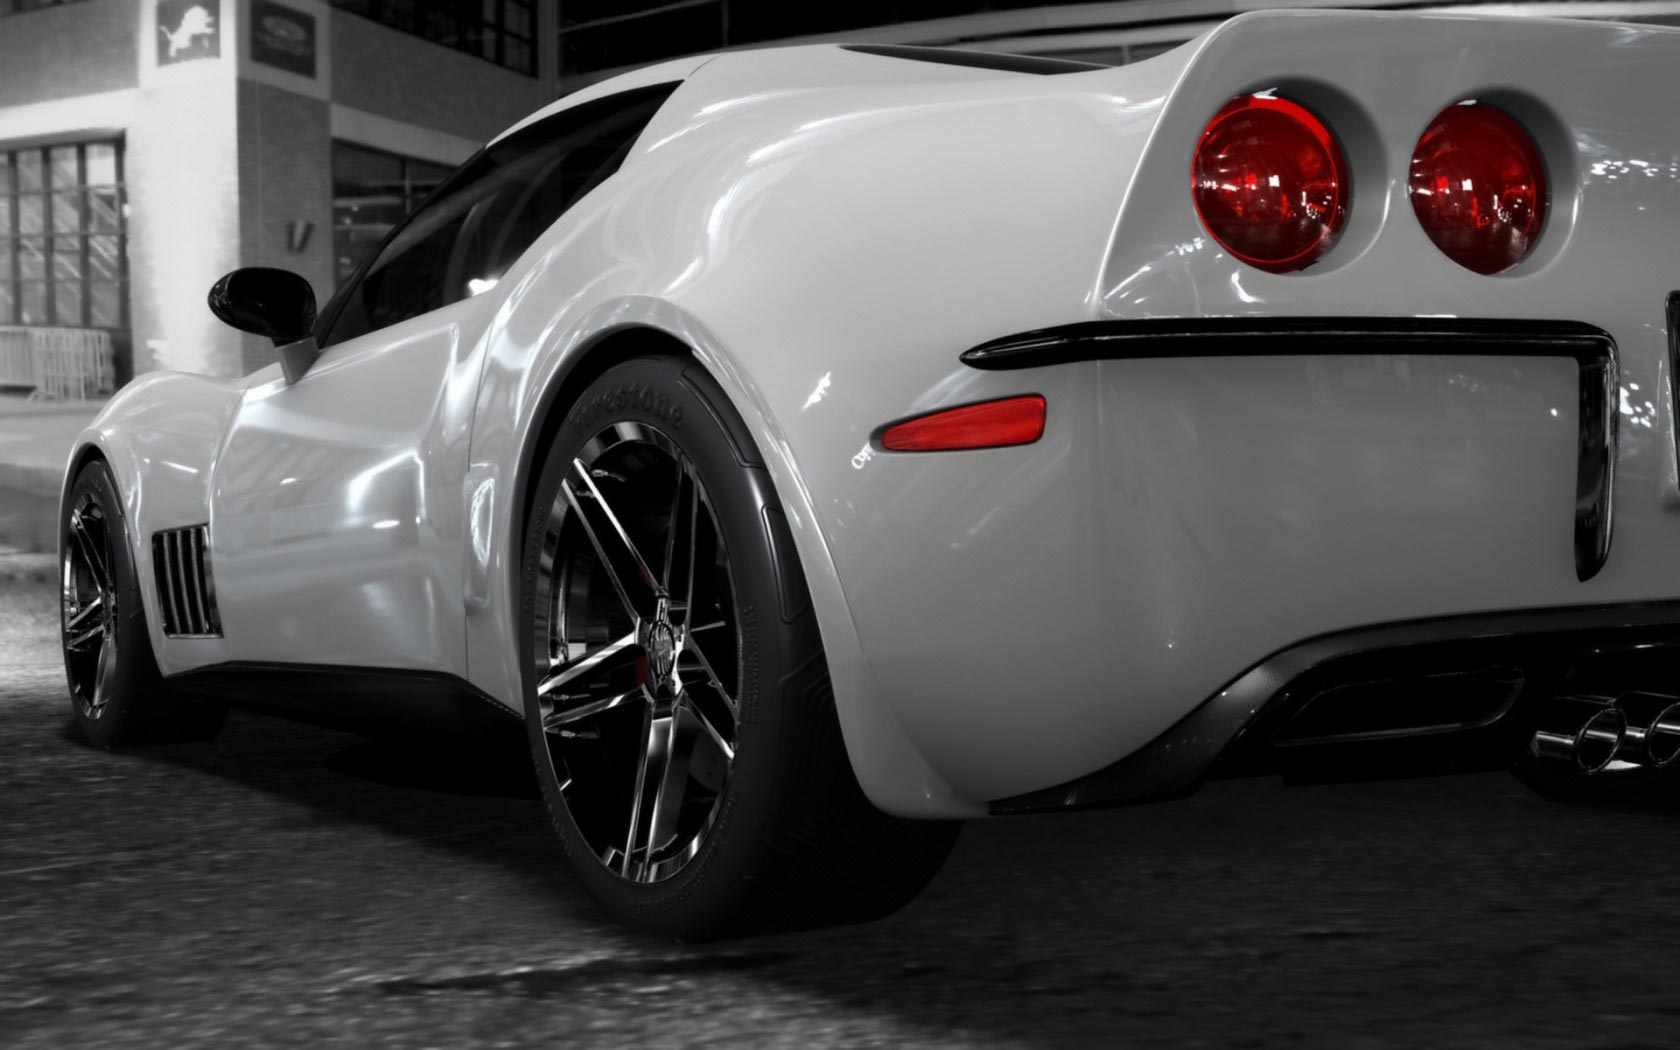 Cool 3d Car Backgrounds 9875 Hd Wallpapers in 3D   Imagescicom 1680x1050